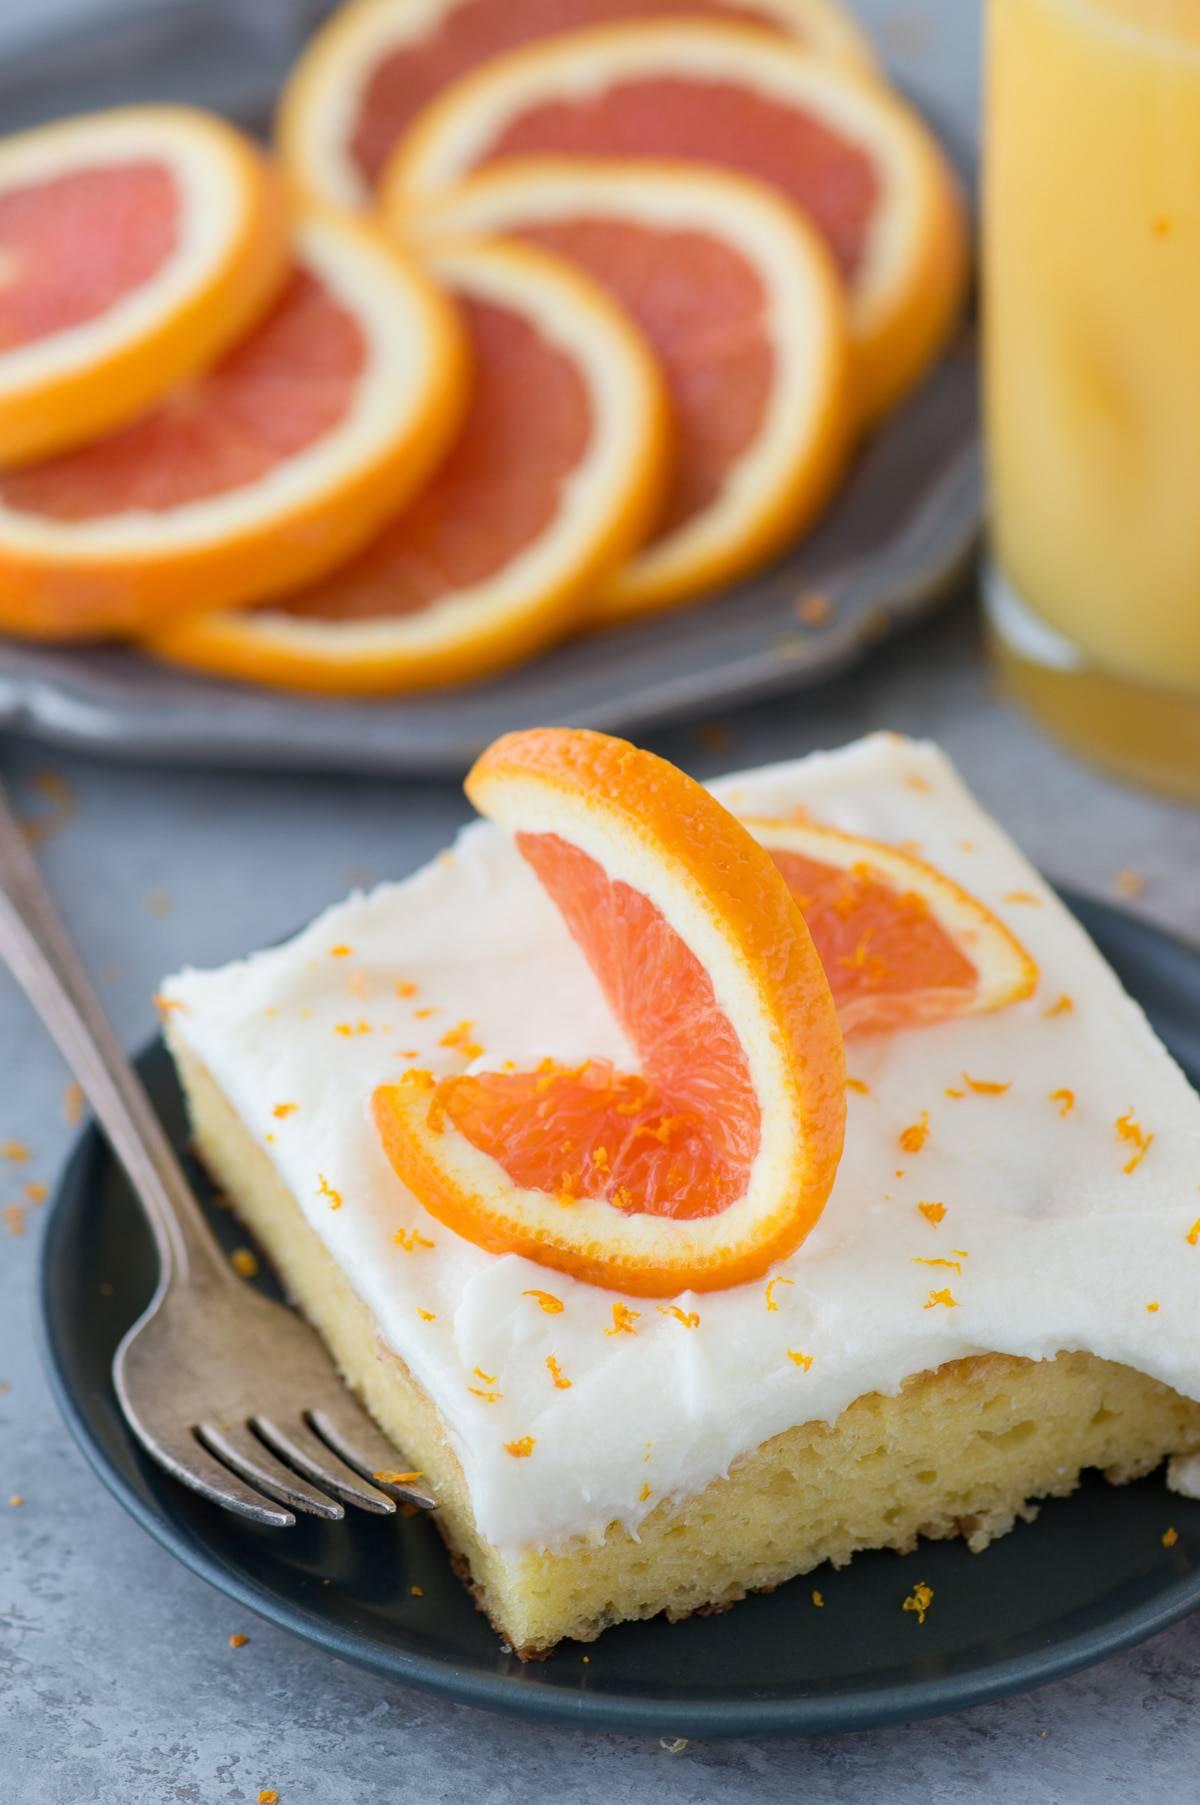 A quick dessert recipe for FLORIDA ORANGE CAKE. A doctored up cake mix recipe with a sweet orange flavor!